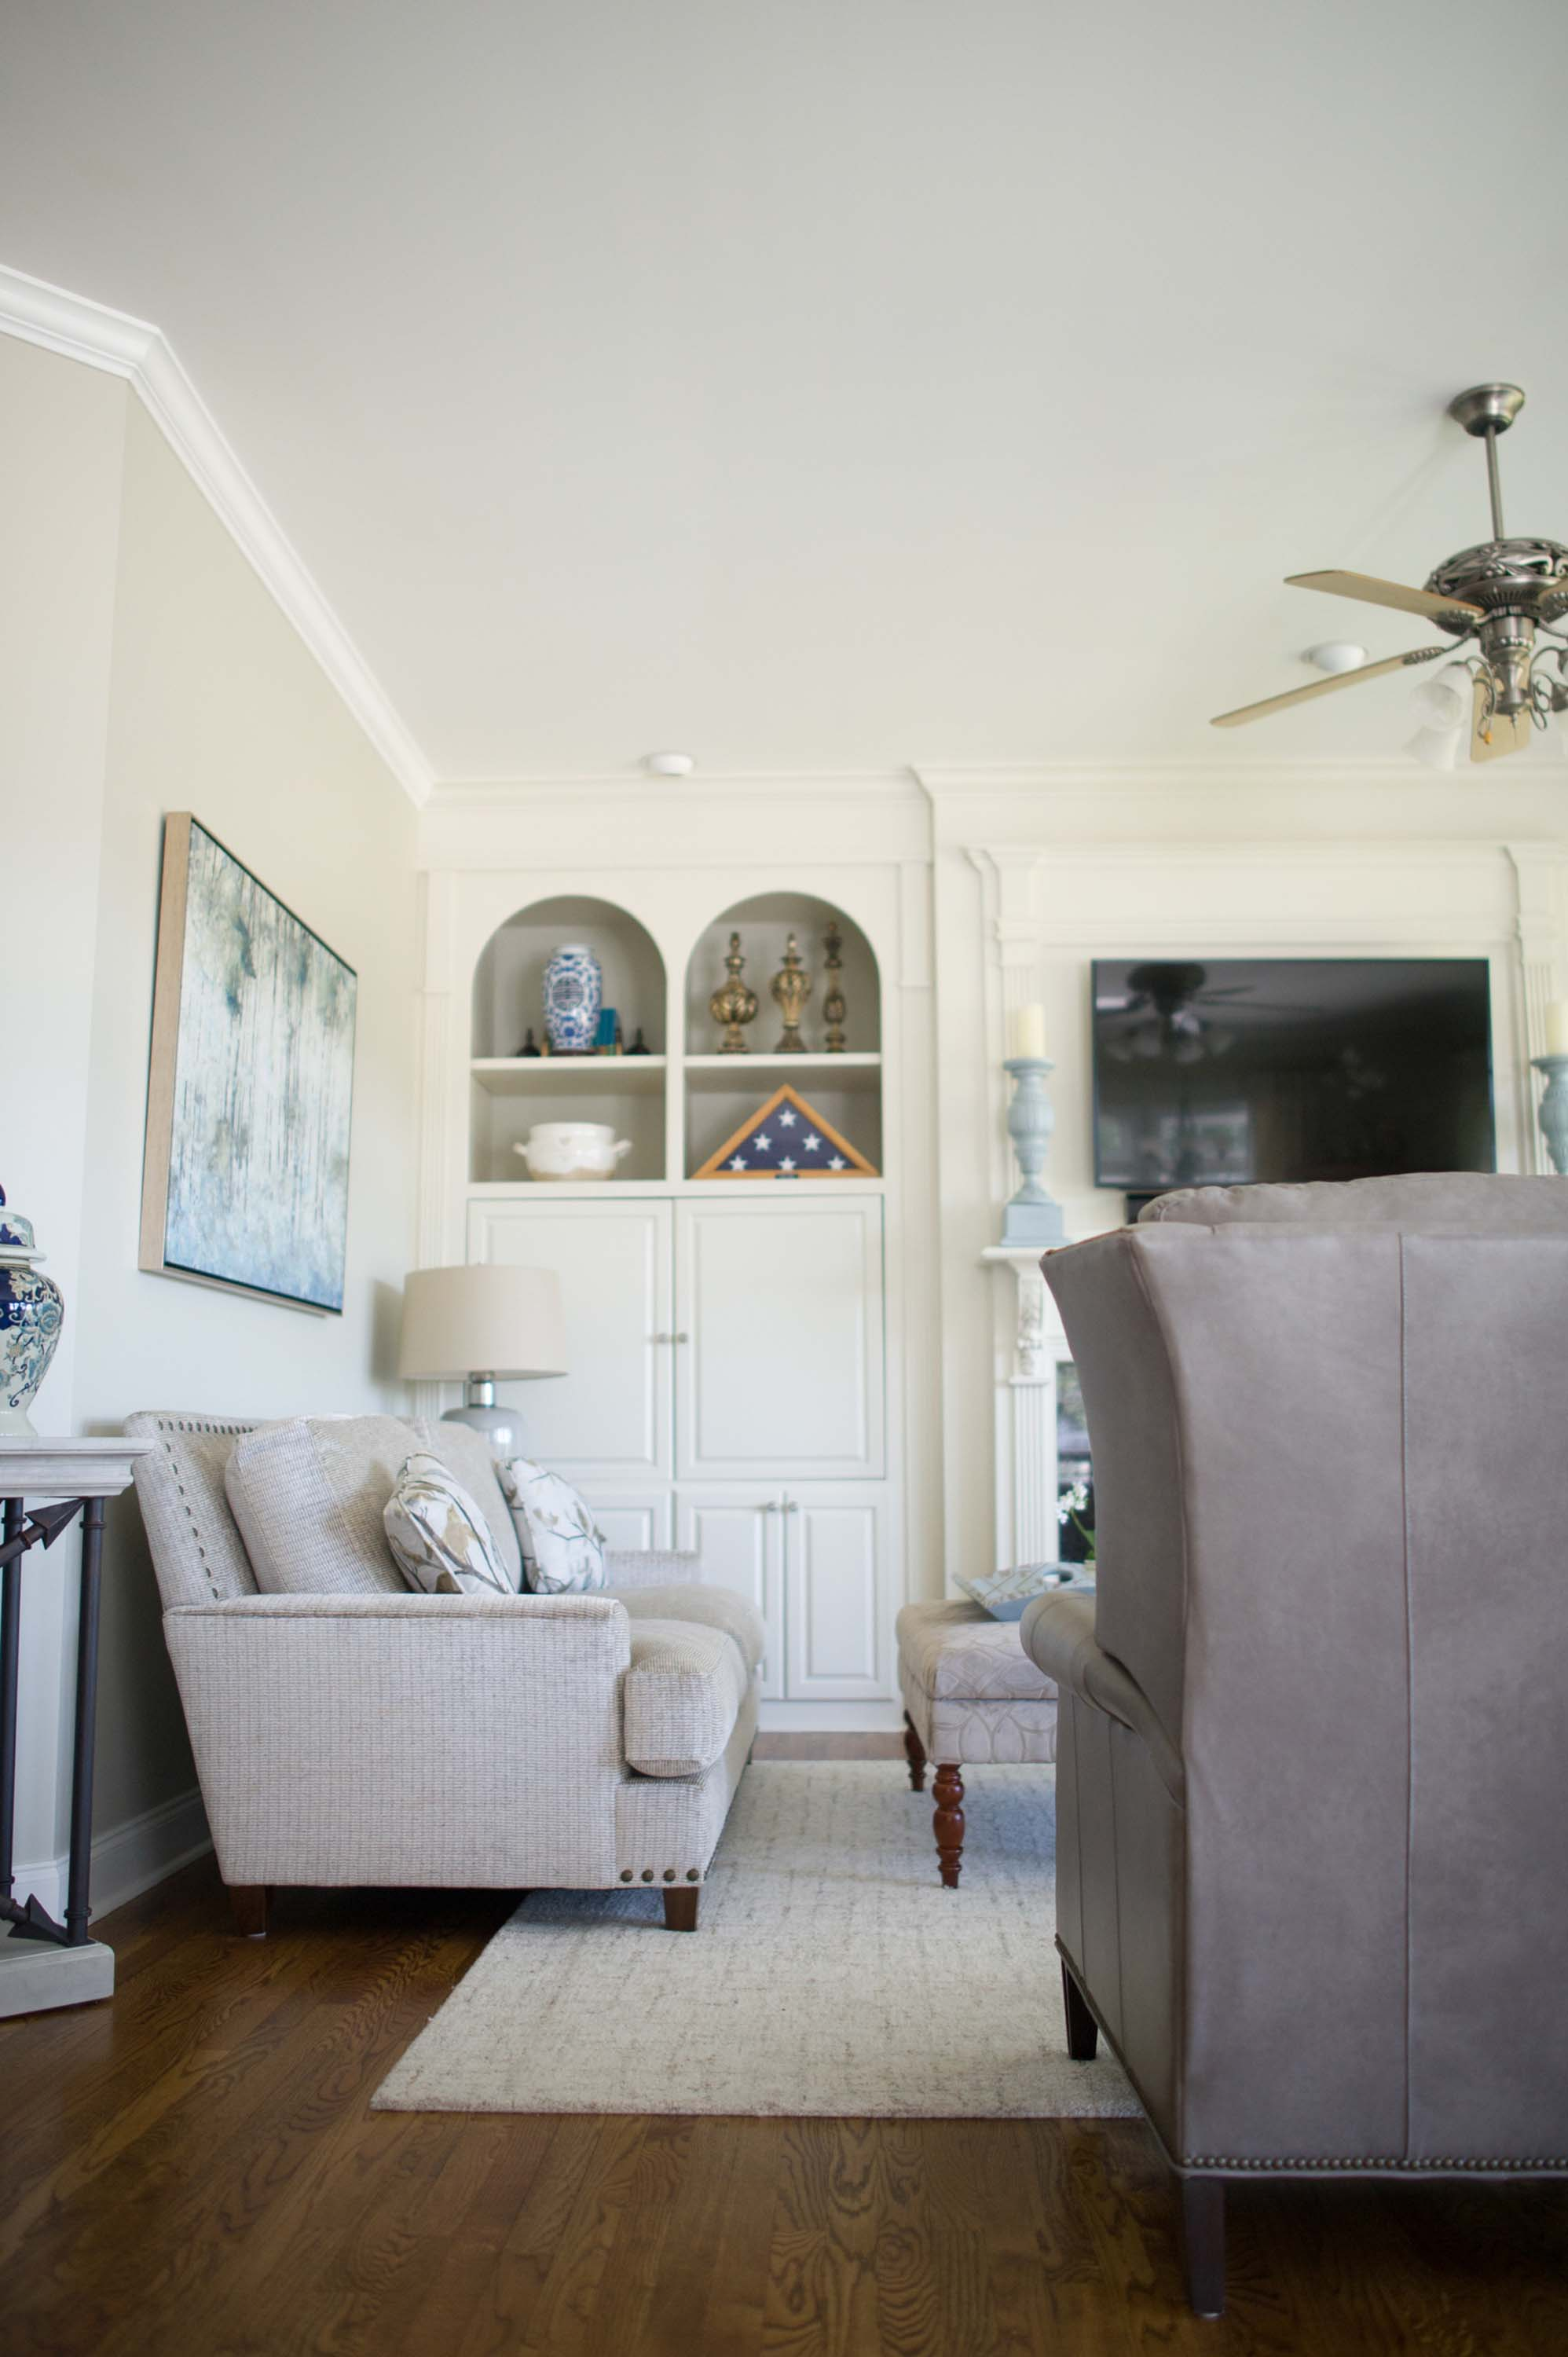 Living room with hardwood floor, sofa white wall and carpet